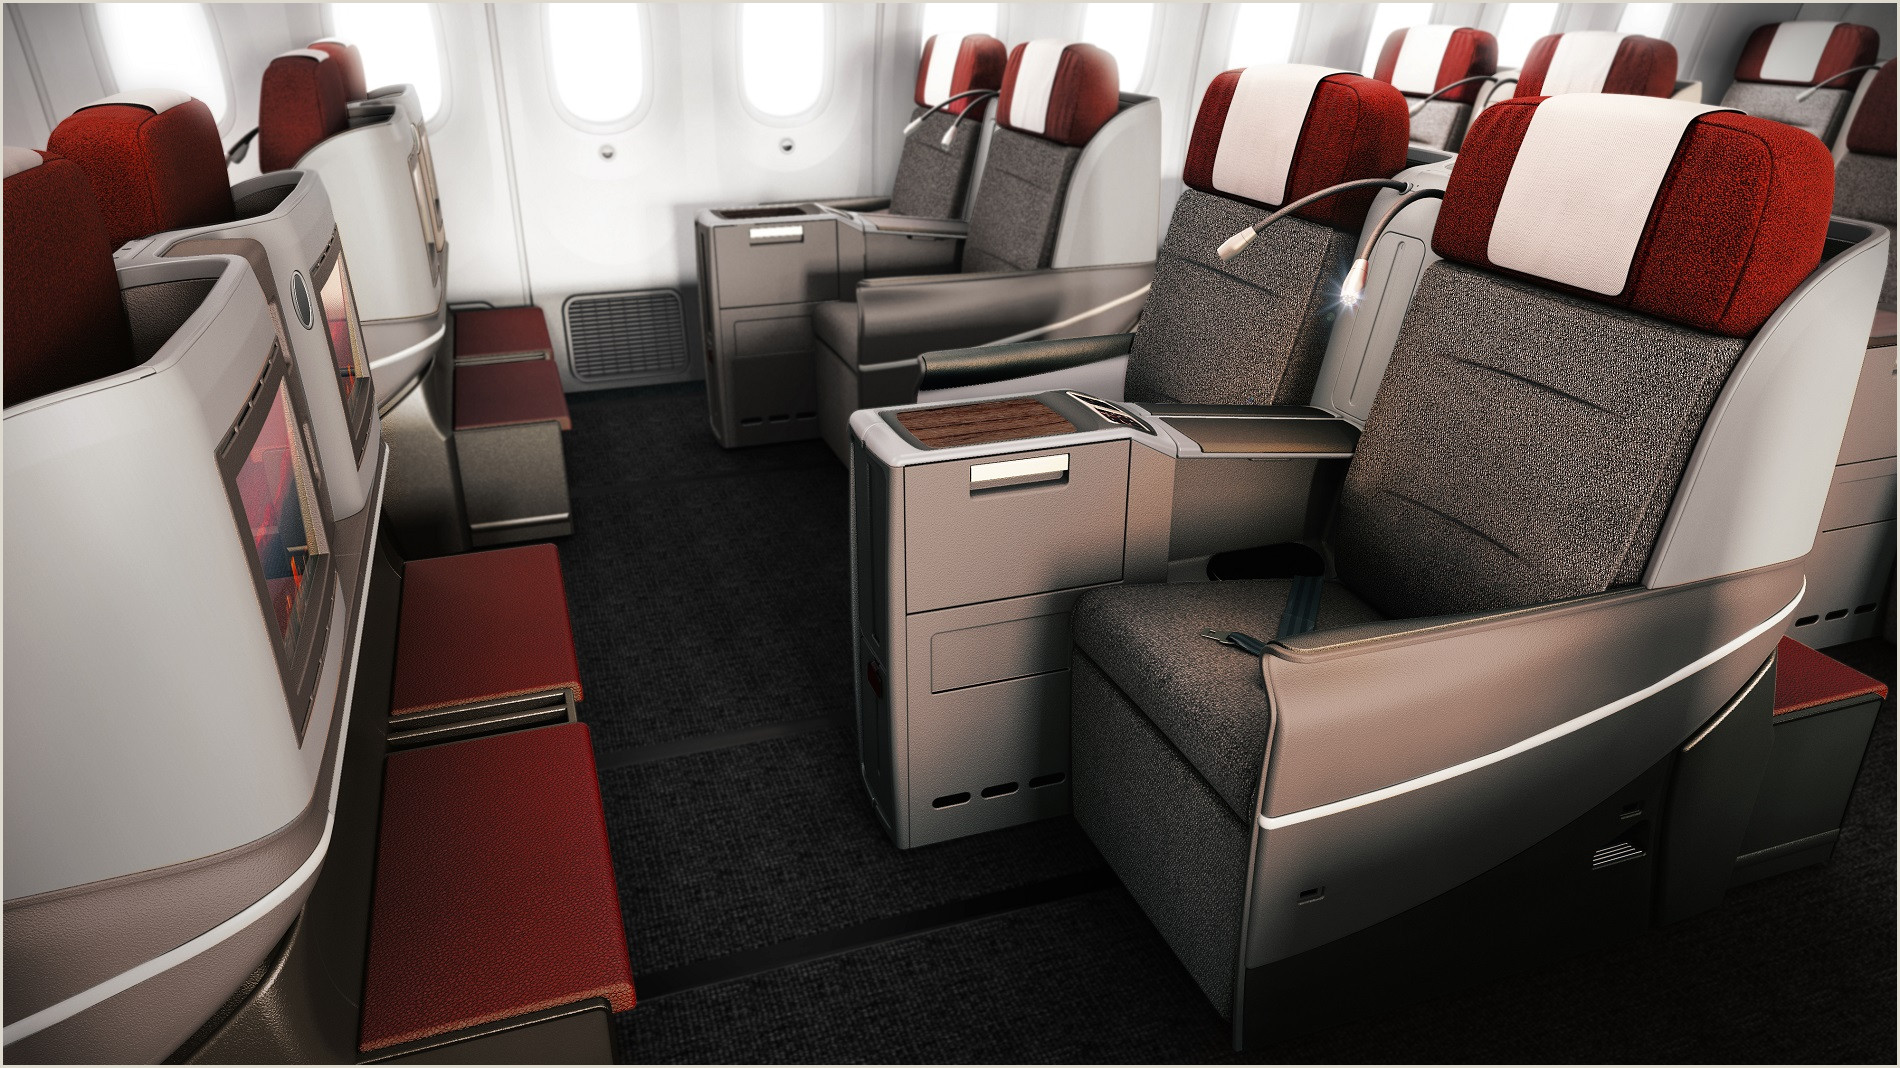 Frequent Miler Best Business Cards Last Chance Deals Business Class To Europe Or South America